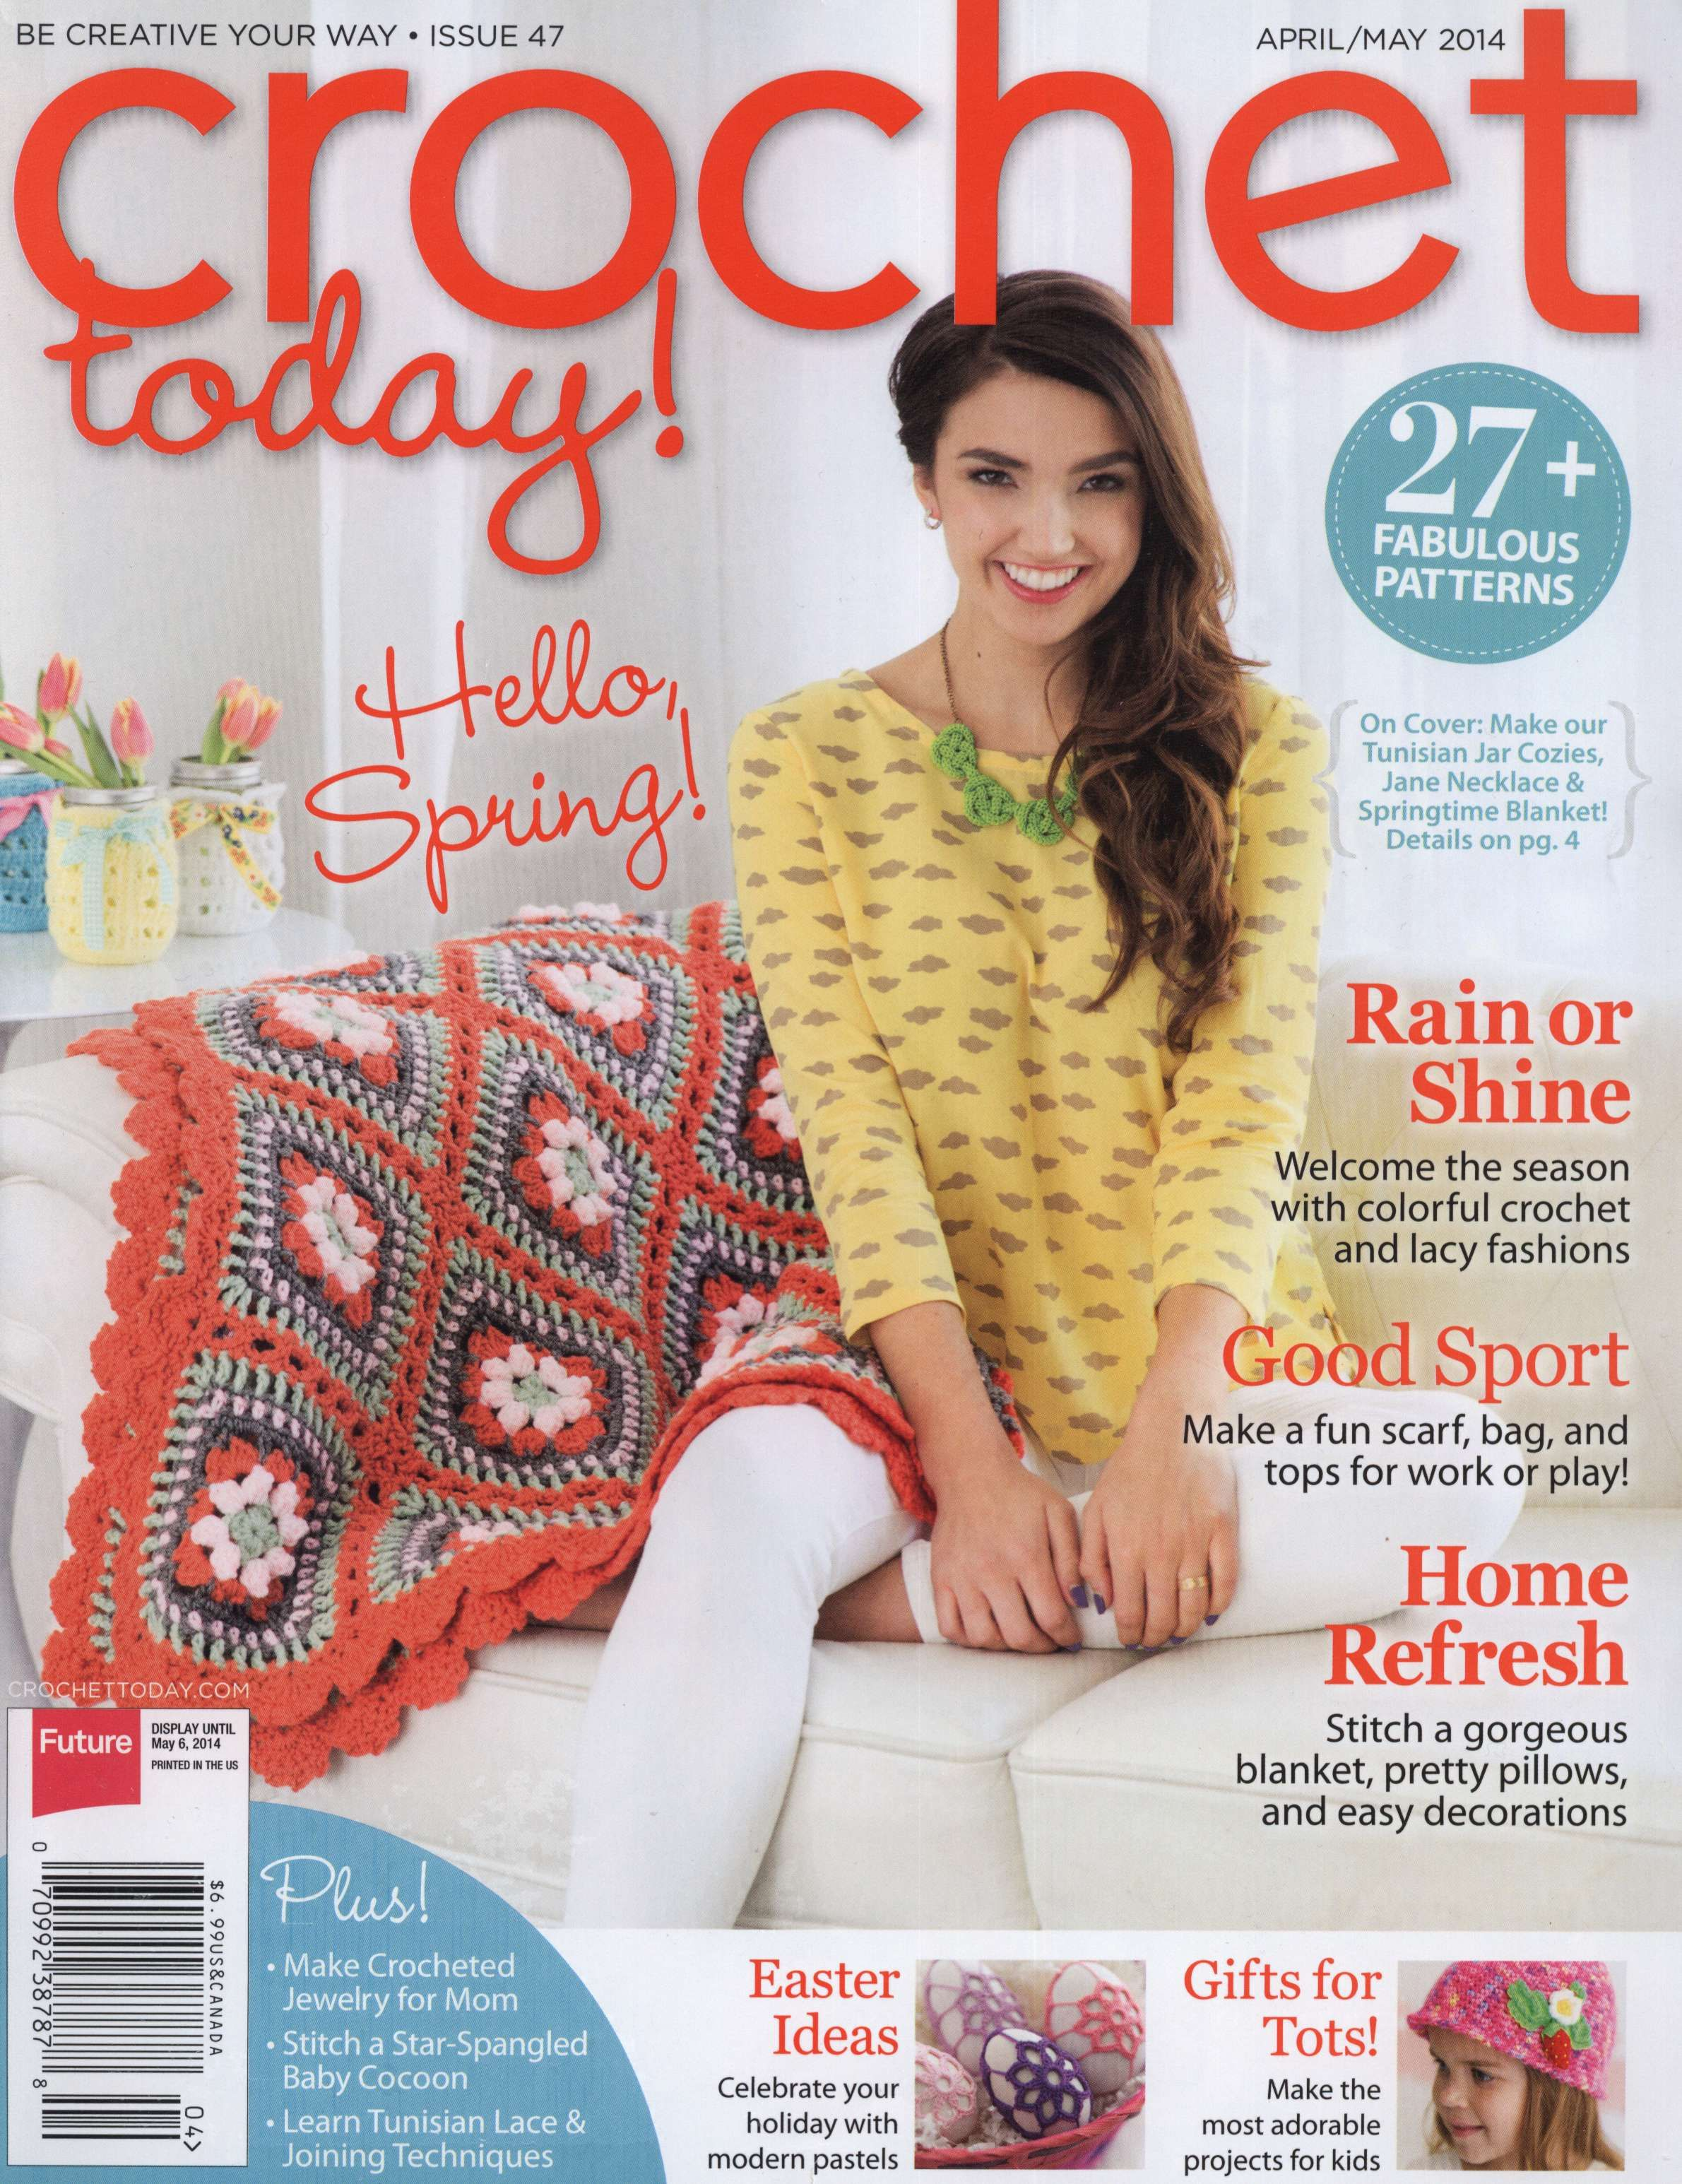 Crochet Today Today! - Issue 47 - Apr/May 2014 | Magazine ...